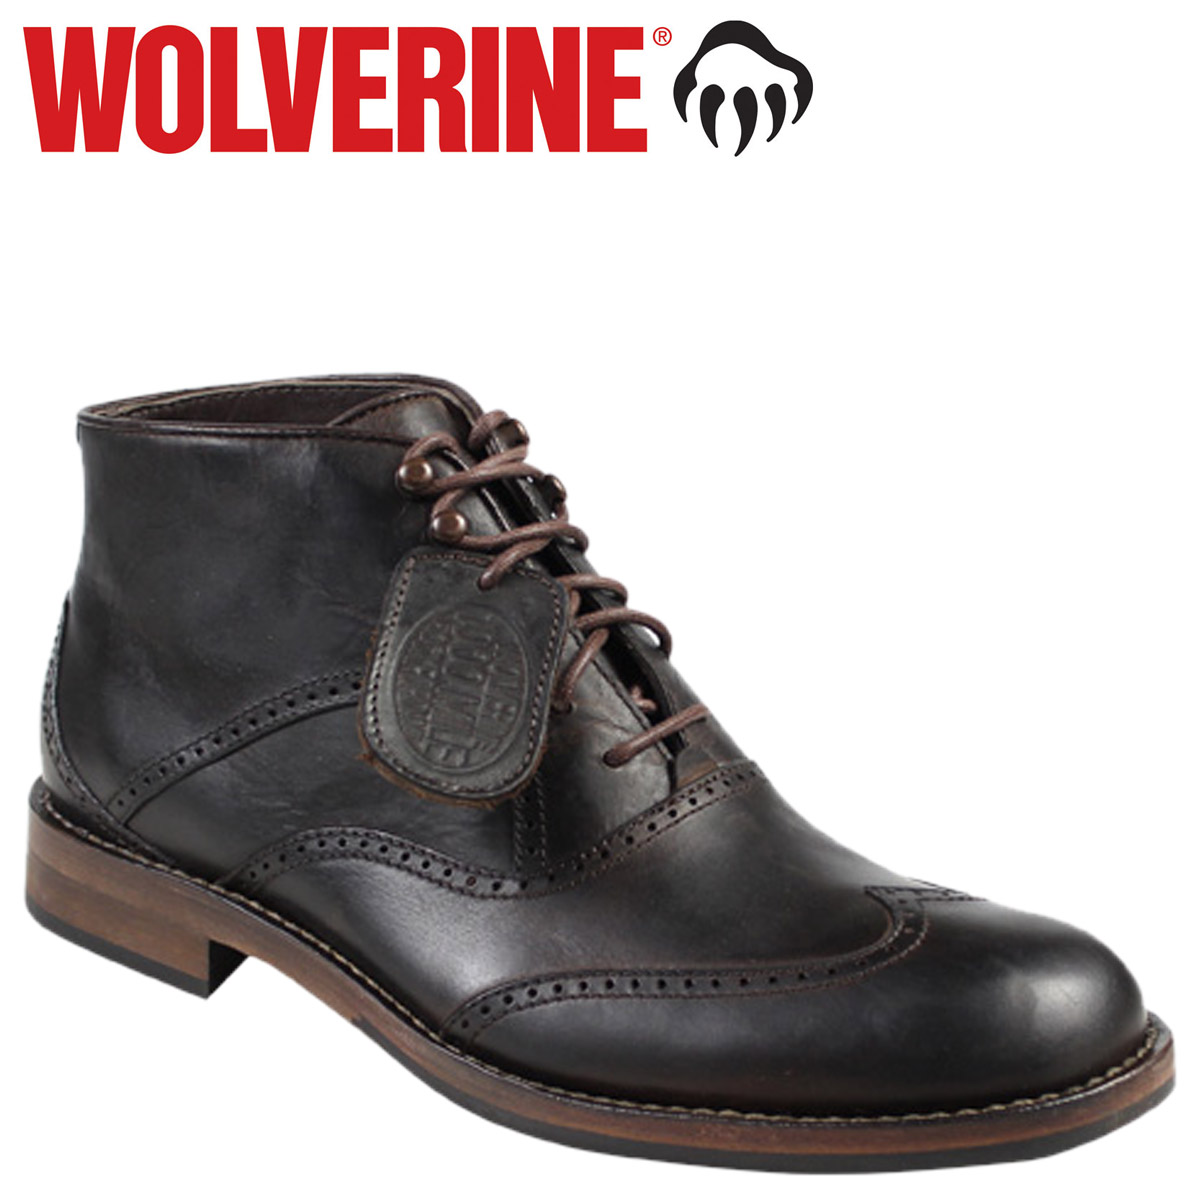 afb99a6e8e8 WOLVERINE Wolverene 1,000 miles chukka boots WESLEY 1000 MILE WINGTIP  CHUKKA BOOT D Wise W05366 brown chukka boots men